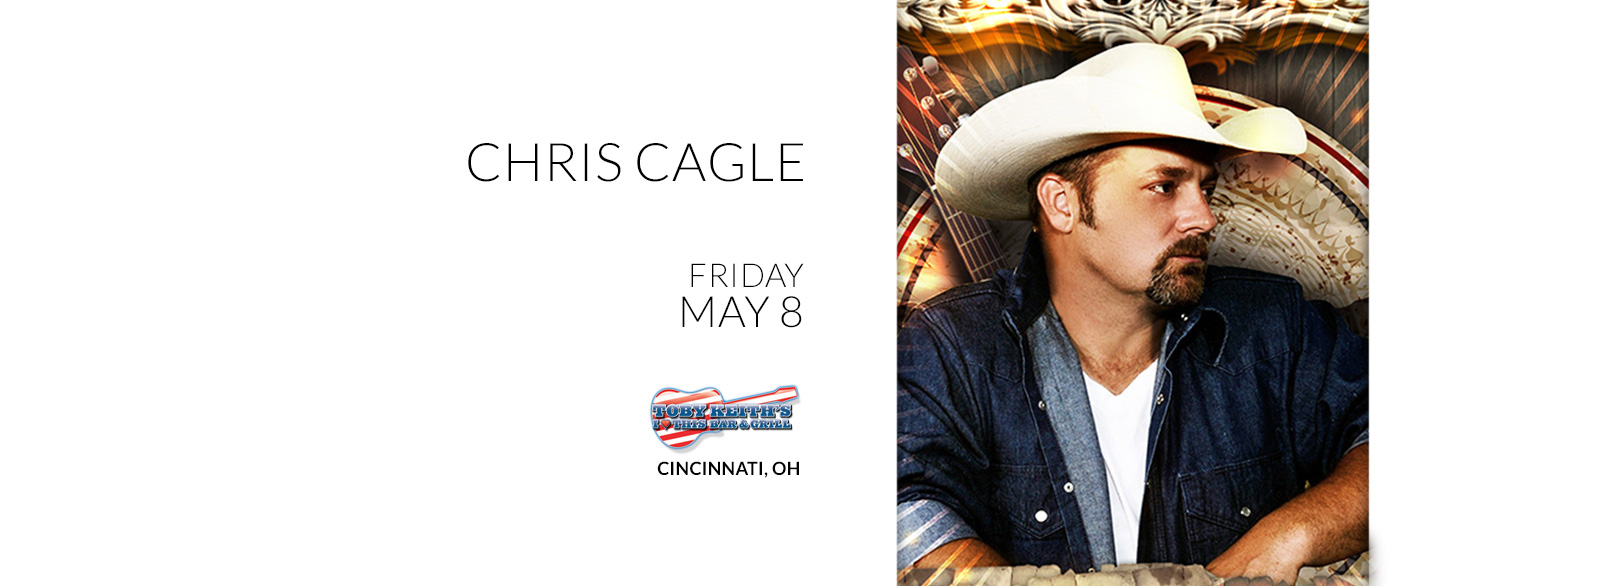 Chris Cagle @ Toby Keith's Cincinnati